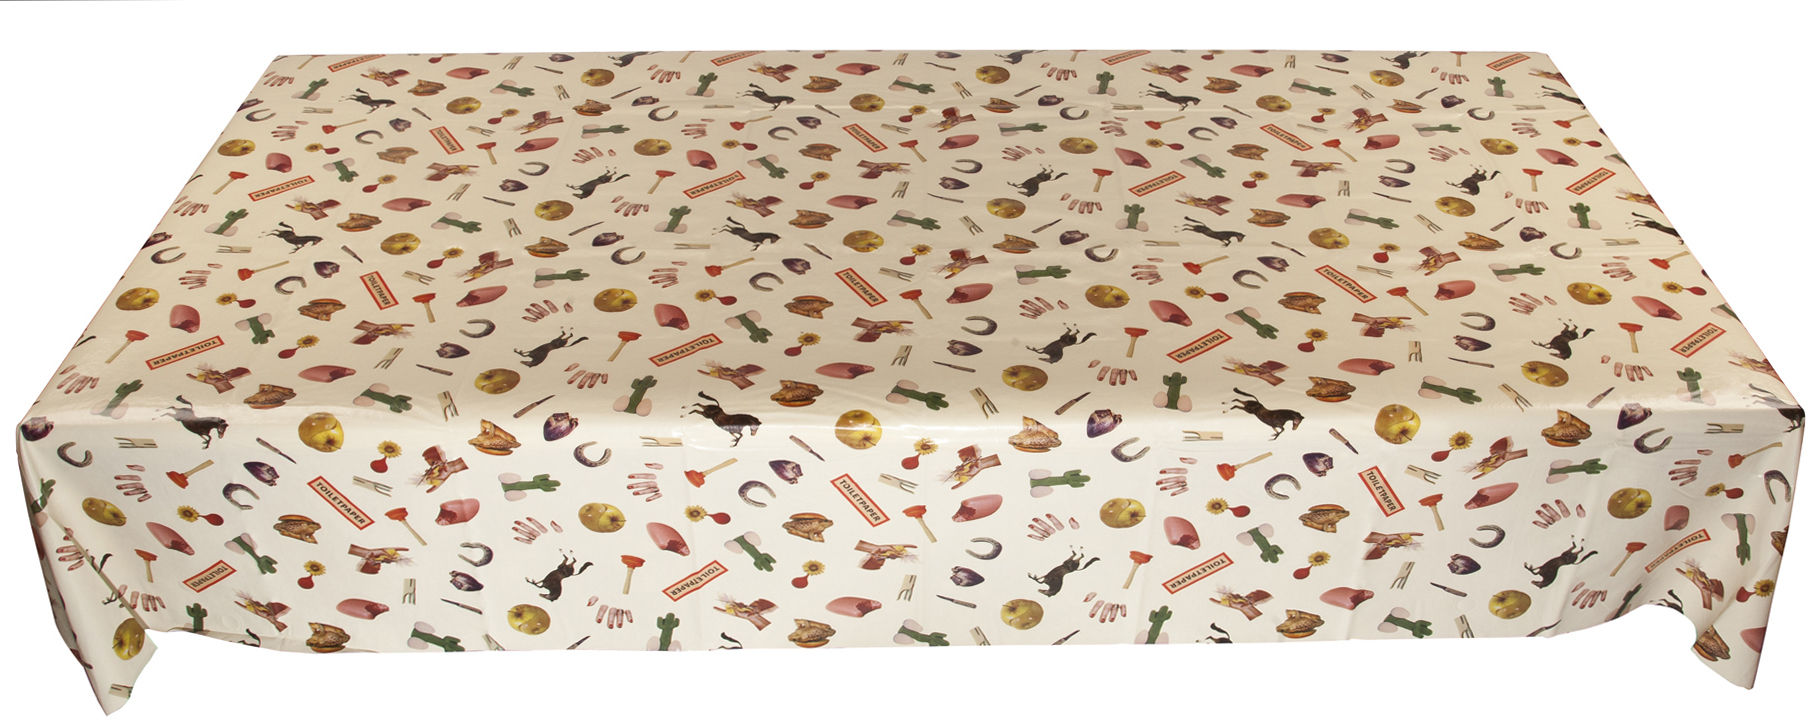 Tableware - Napkins & Tablecloths - Toiletpaper - Mix Waxed tablecloth by Seletti - Mix - Oilcloth